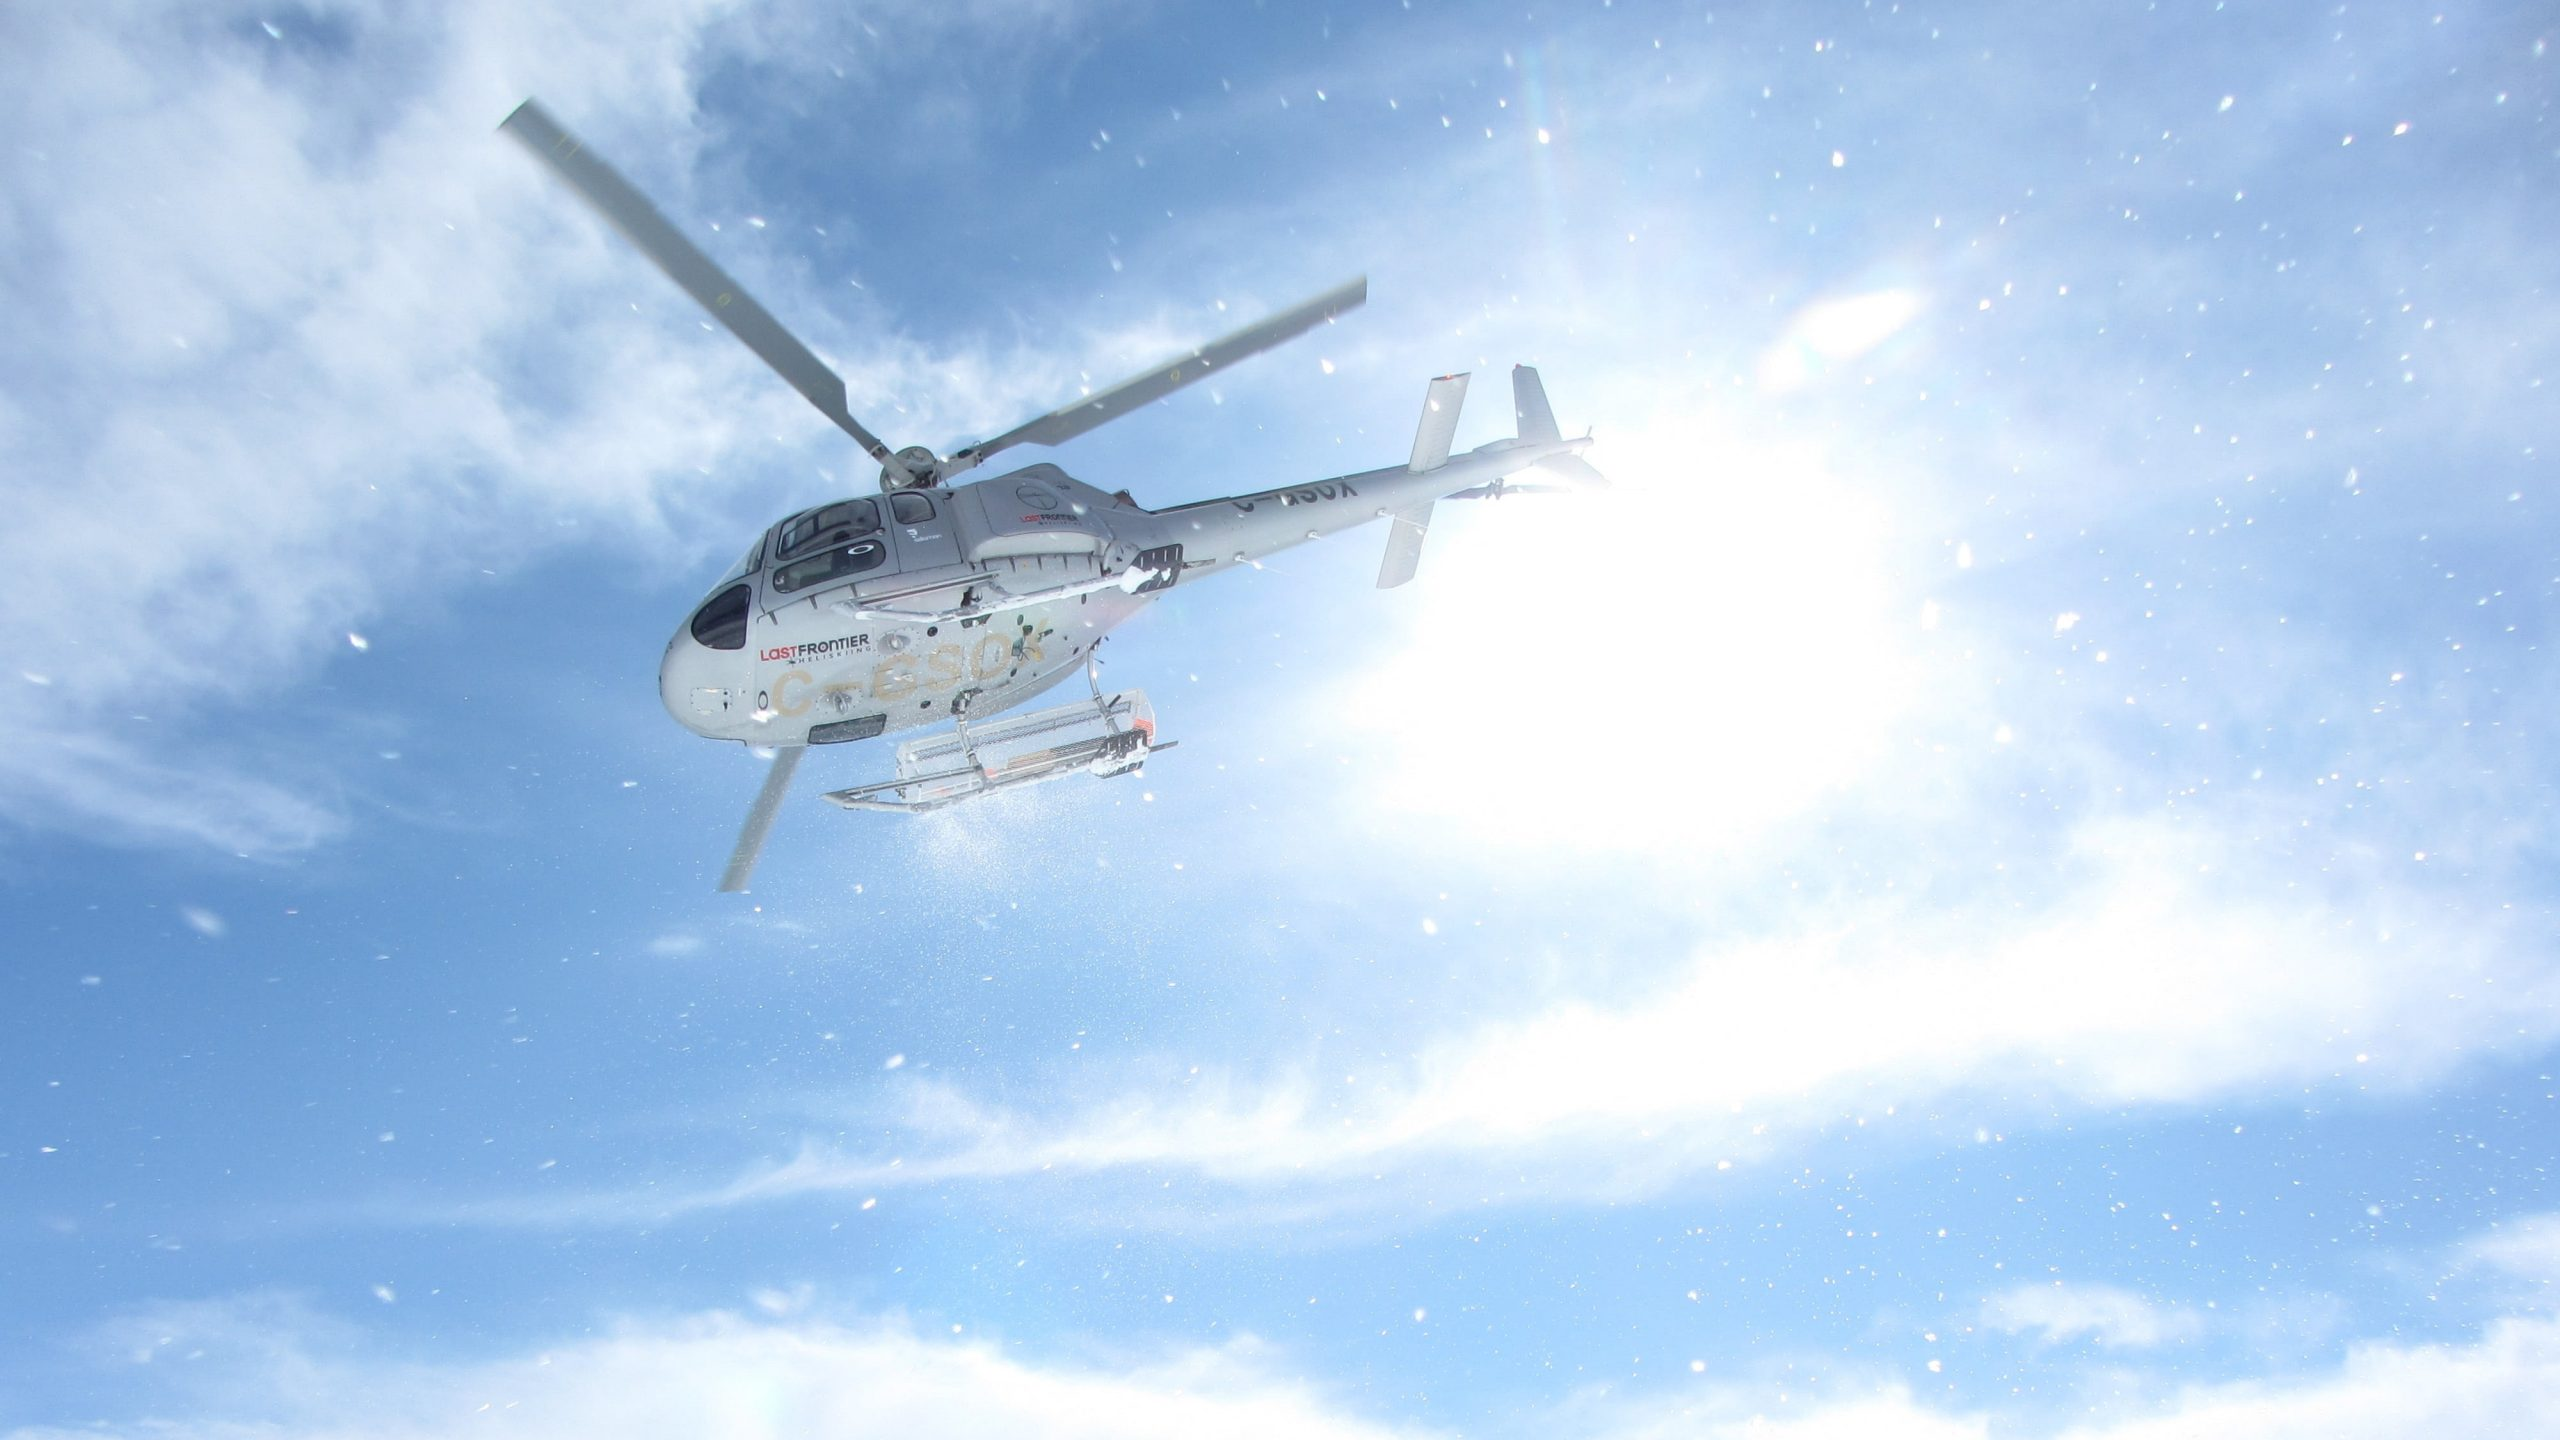 Photo of a helicopter flying in Alaska in blue sky background